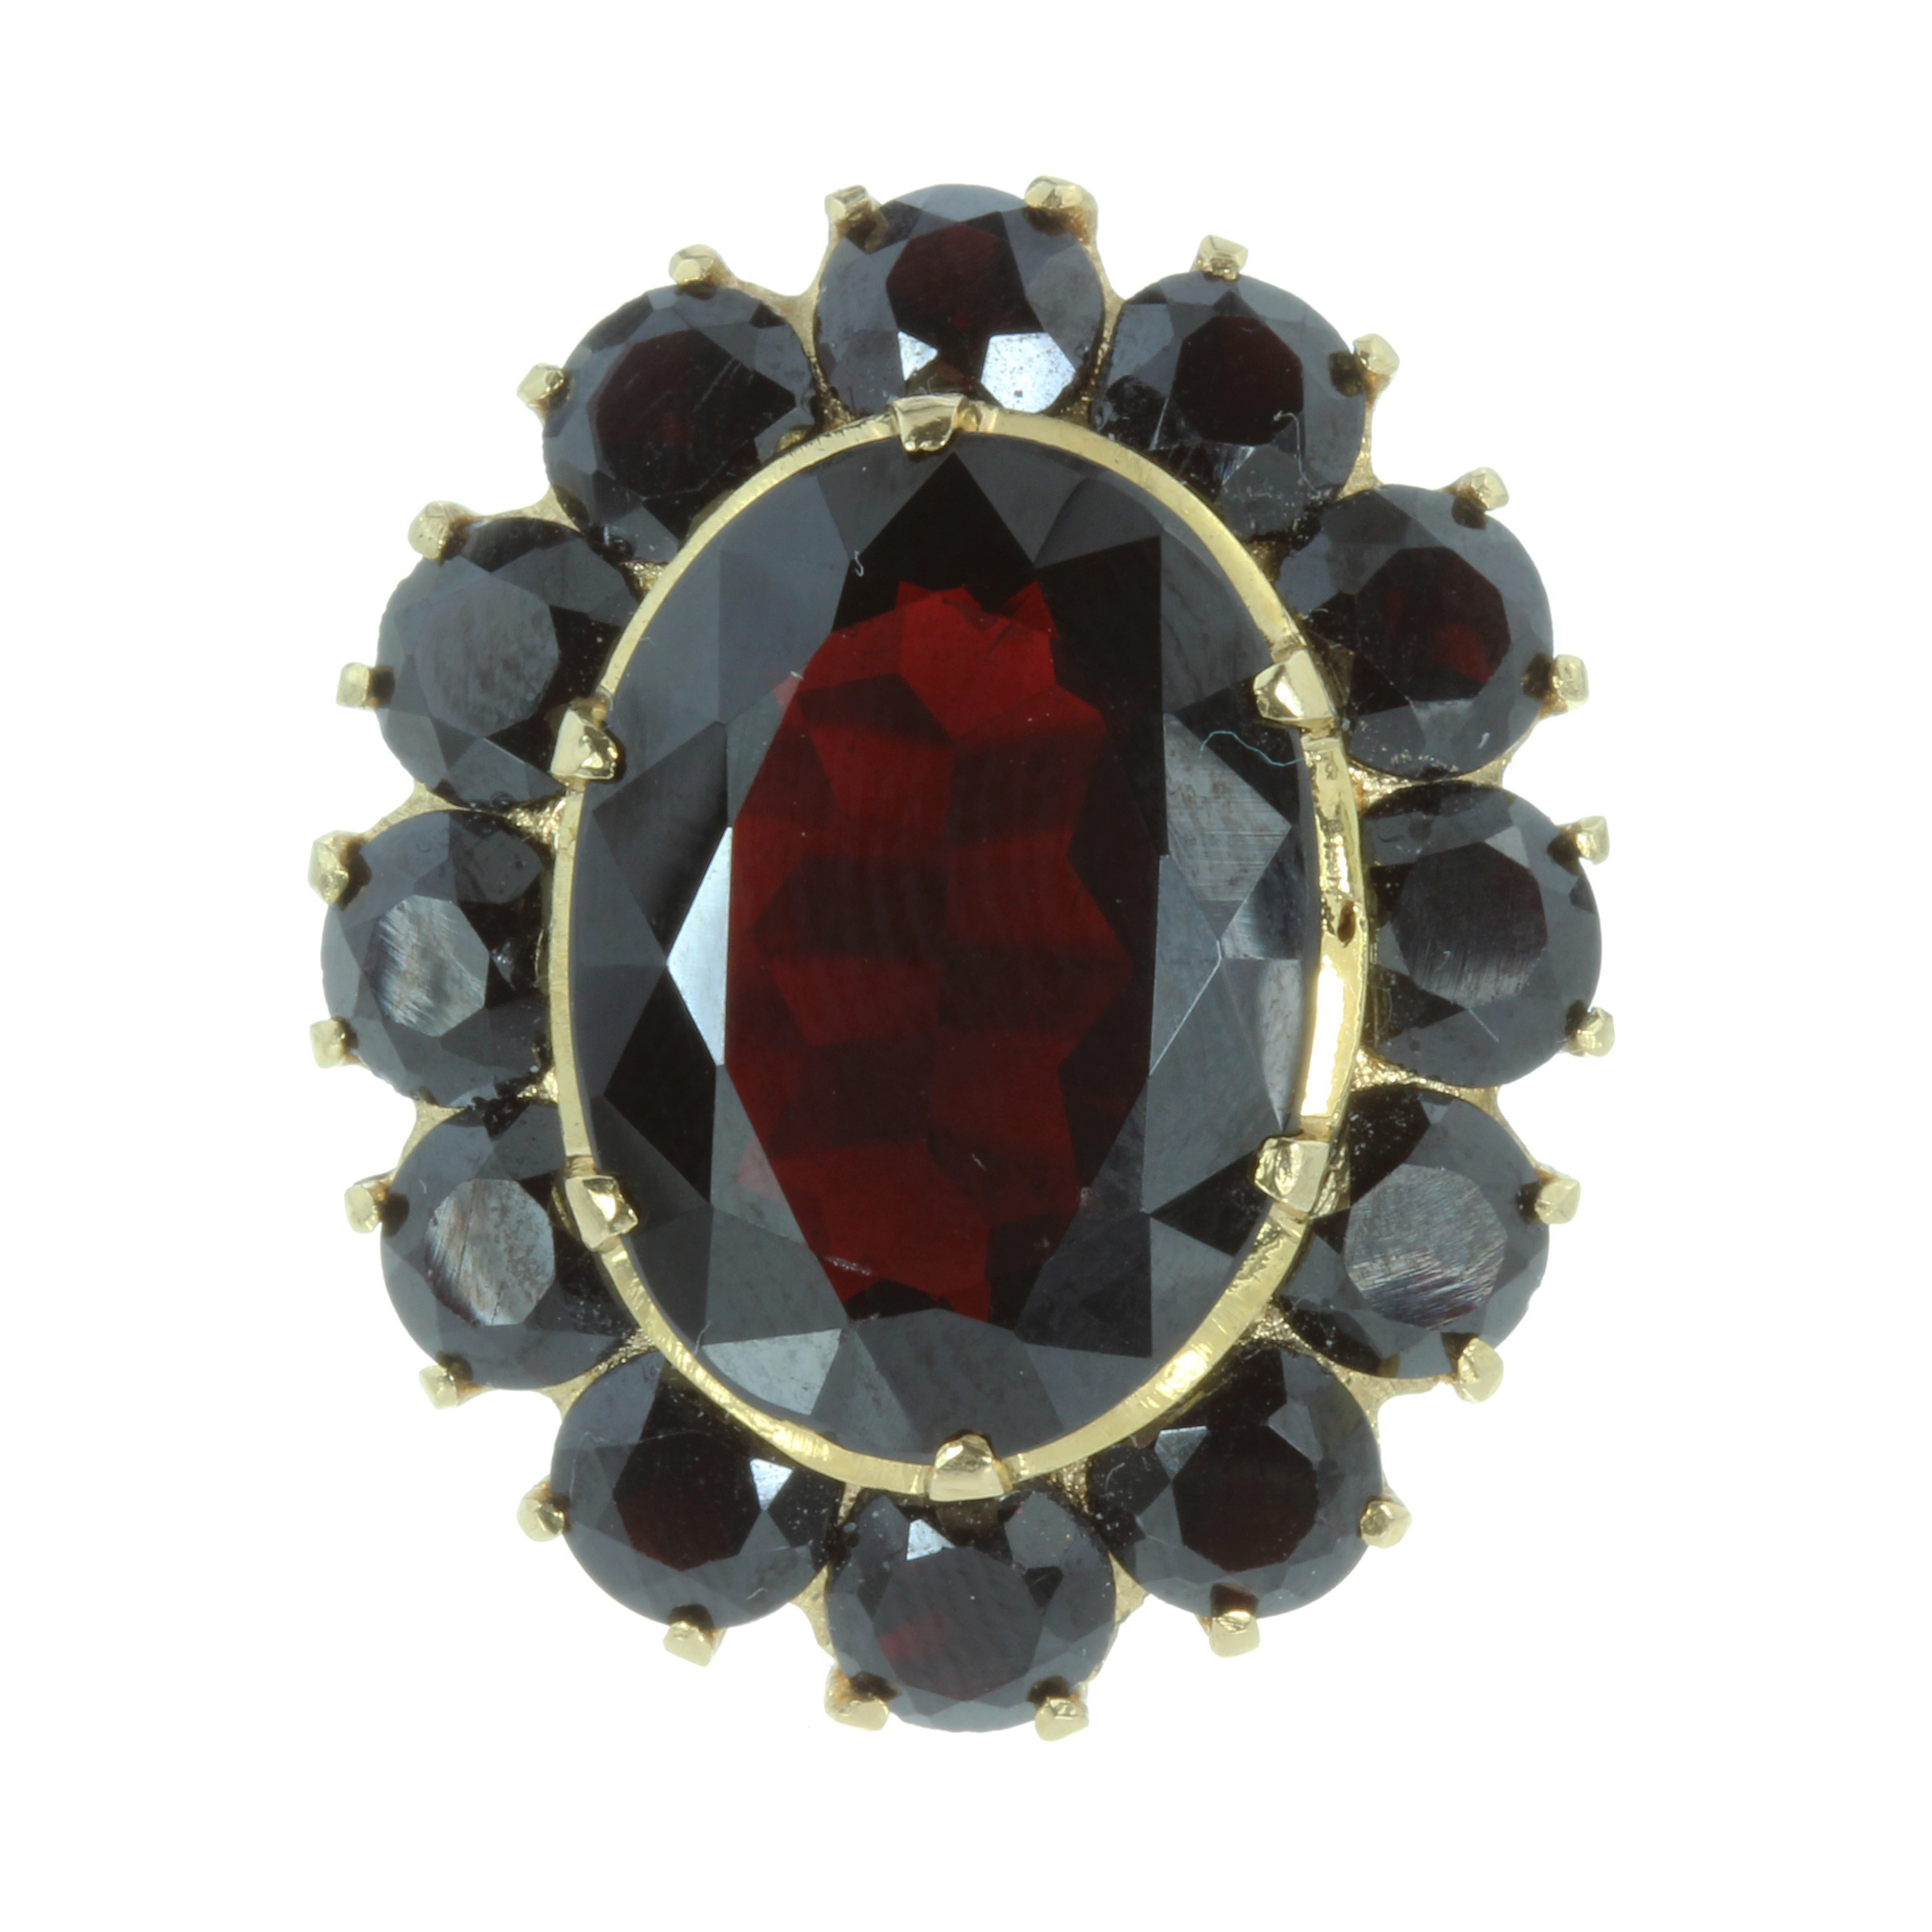 Los 39 - A GARNET CLUSTER COCKTAIL RING set with a large oval cut garnet surrounded by a cluster of twelve